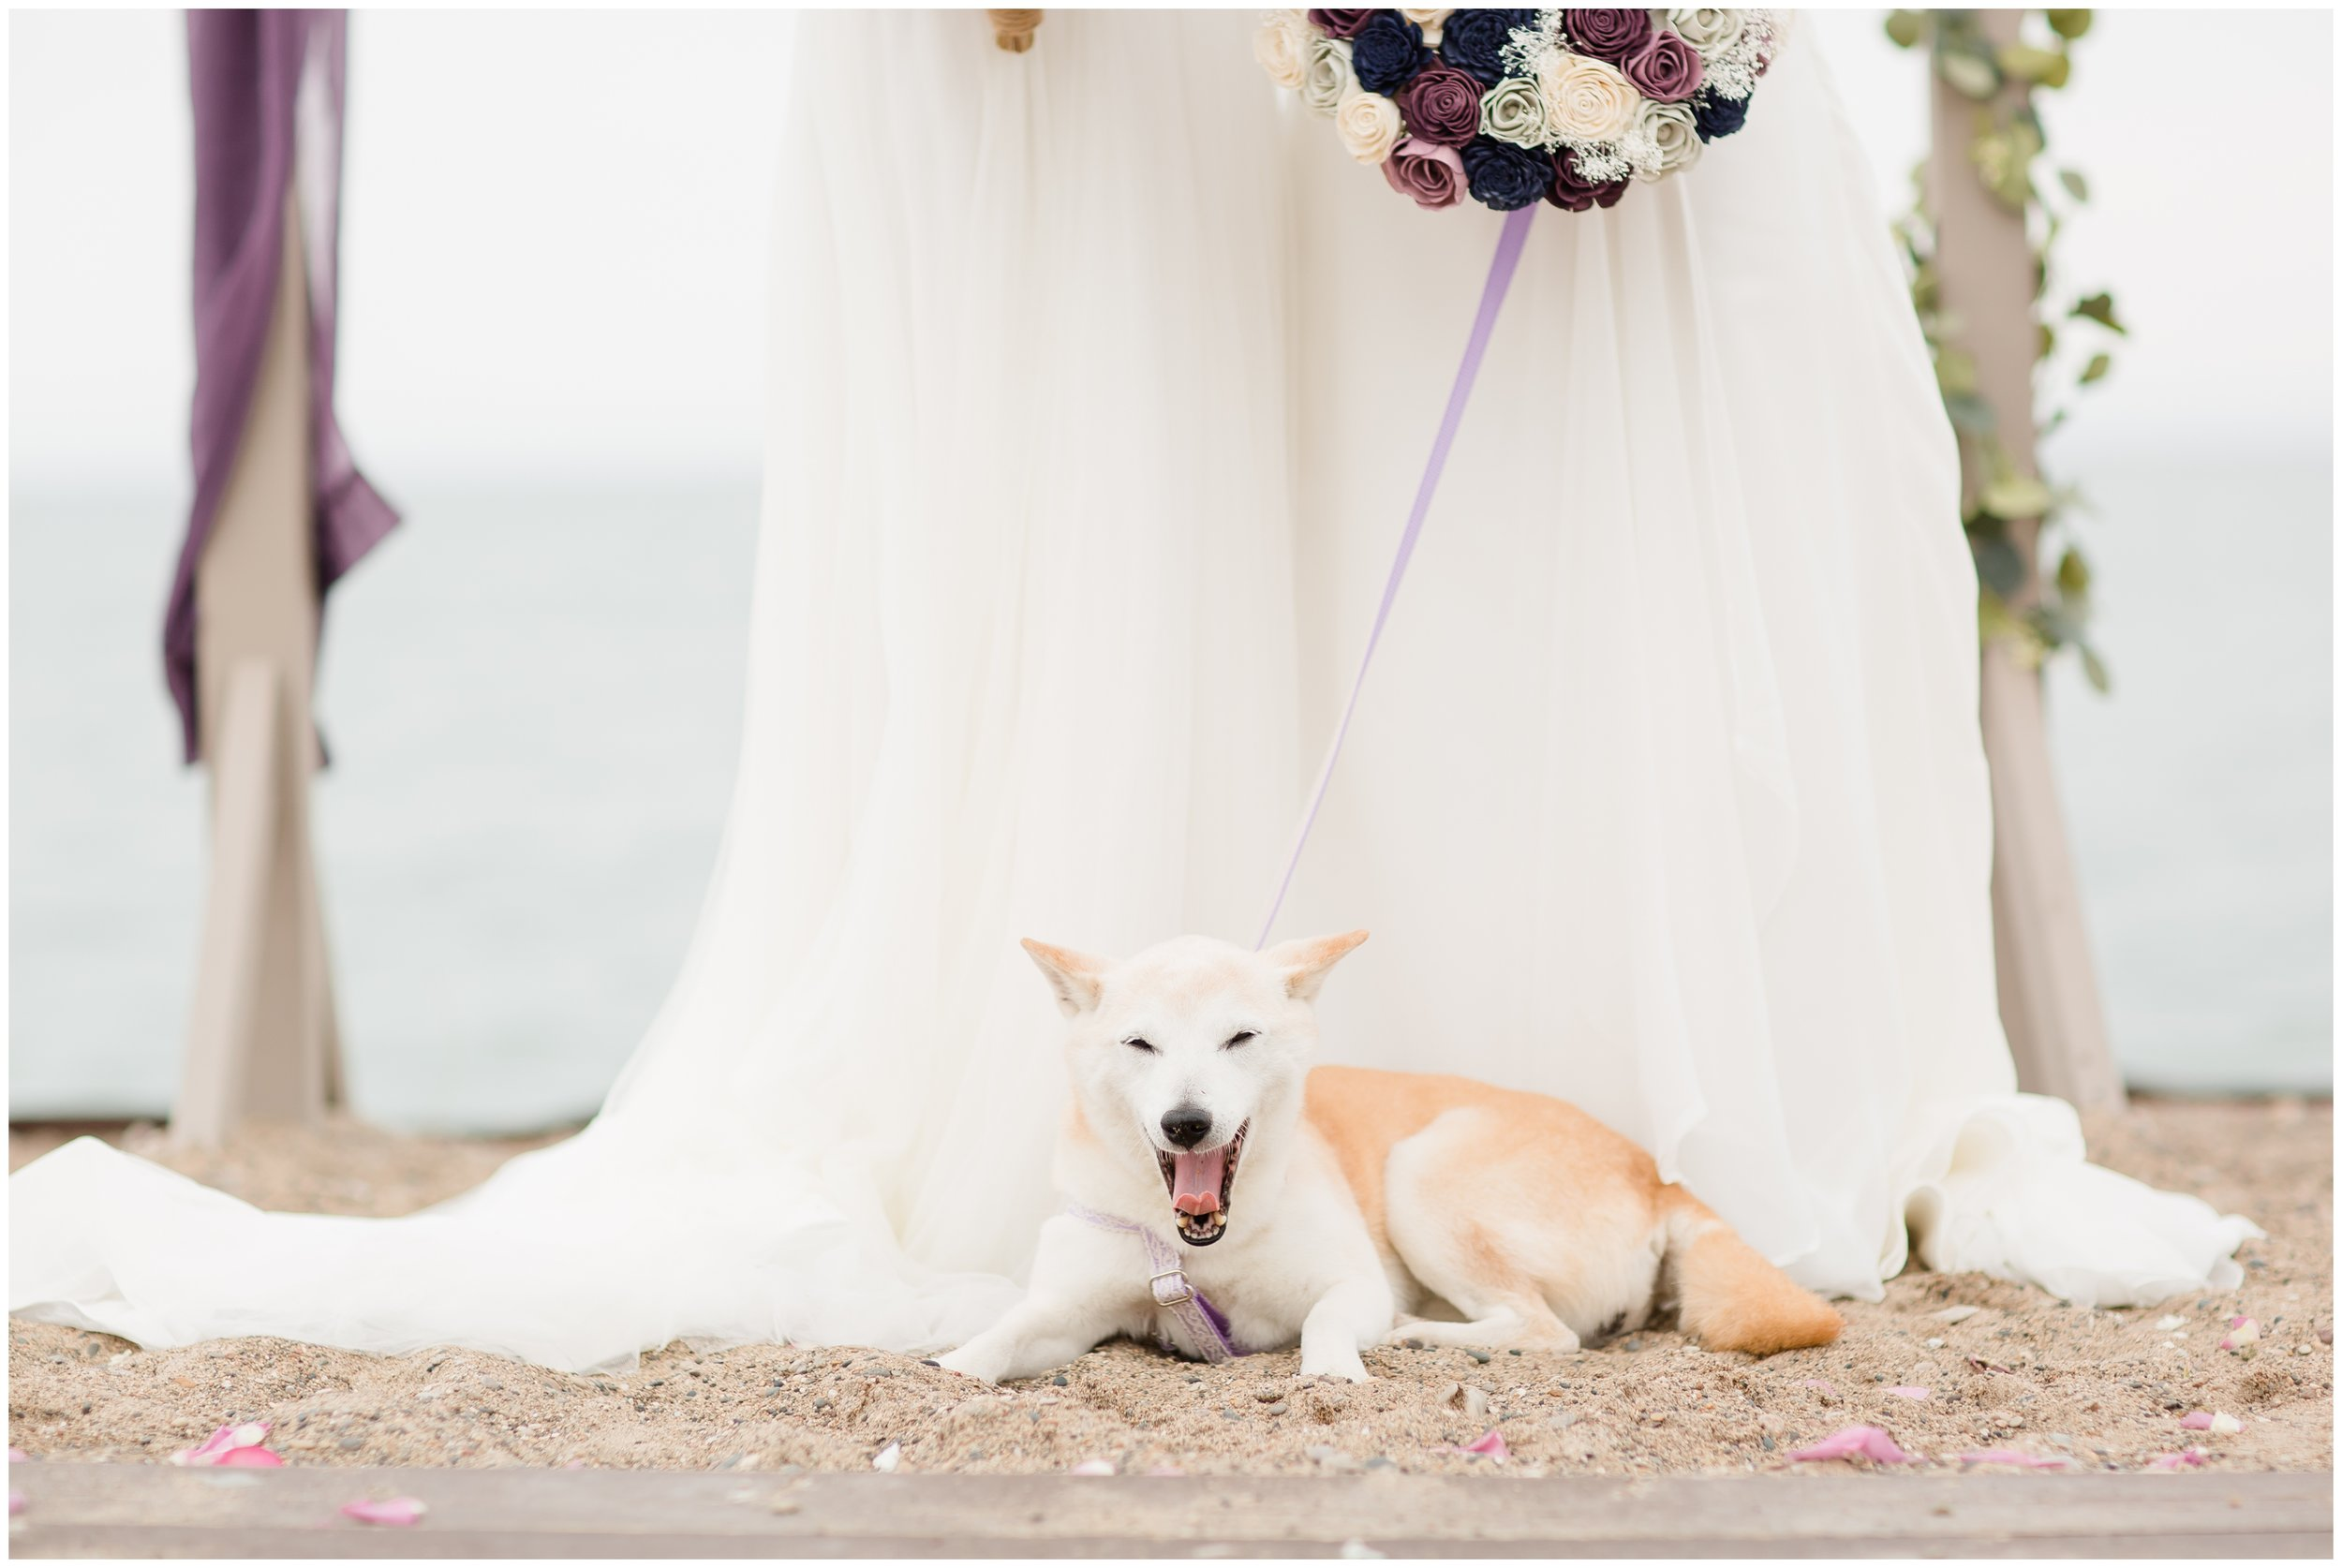 Wedding photo with Dog at Zion Illinois